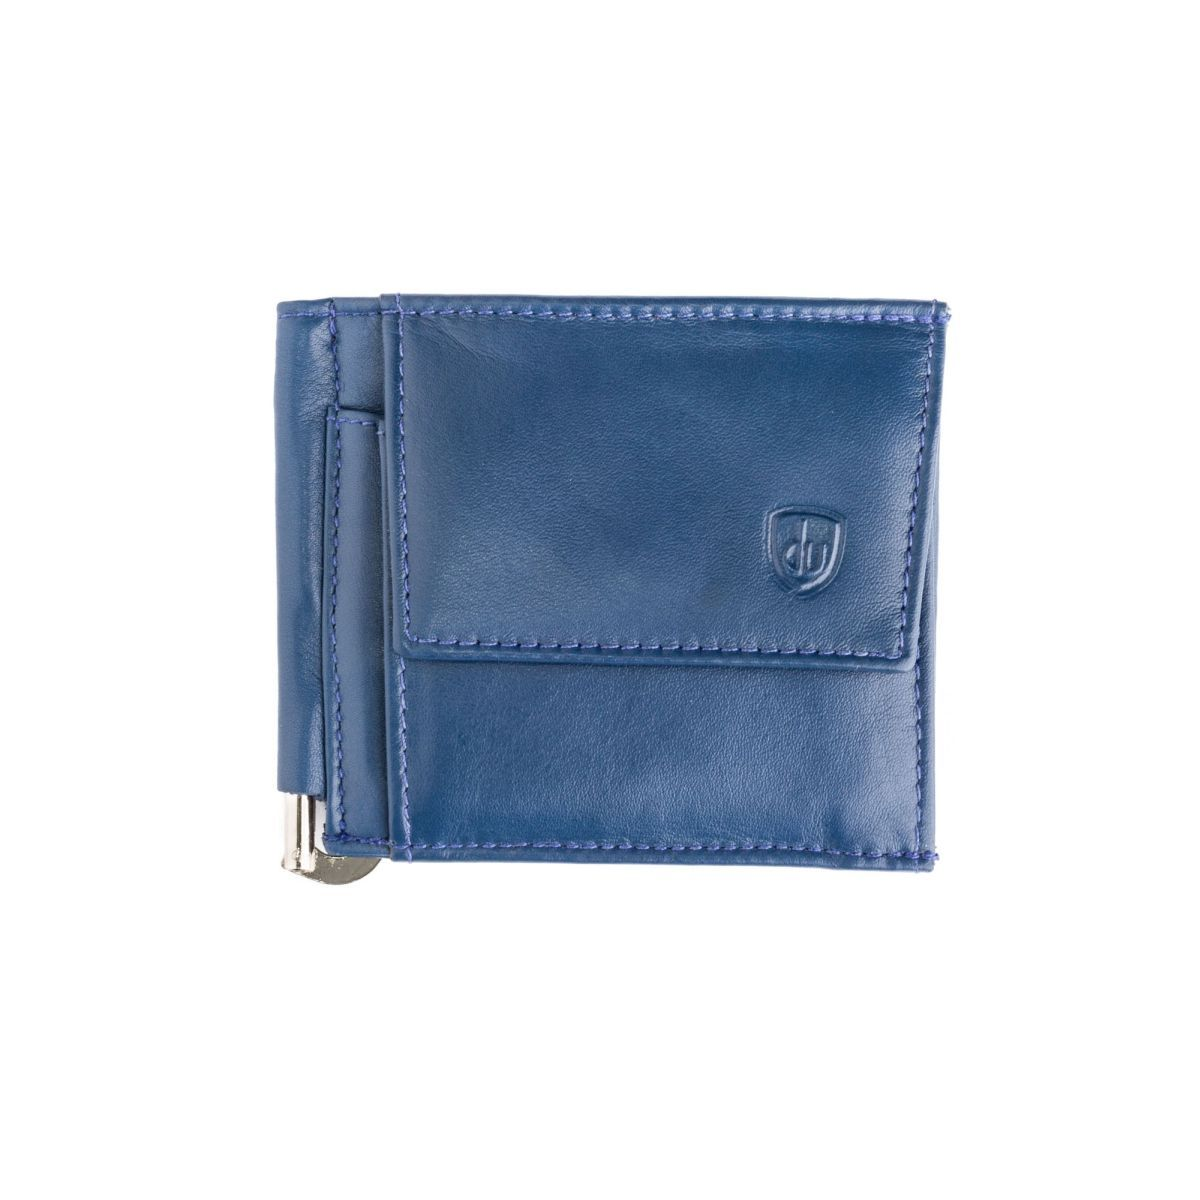 dv Small Leather Wallet With Clips And Coin Pocket - Blue